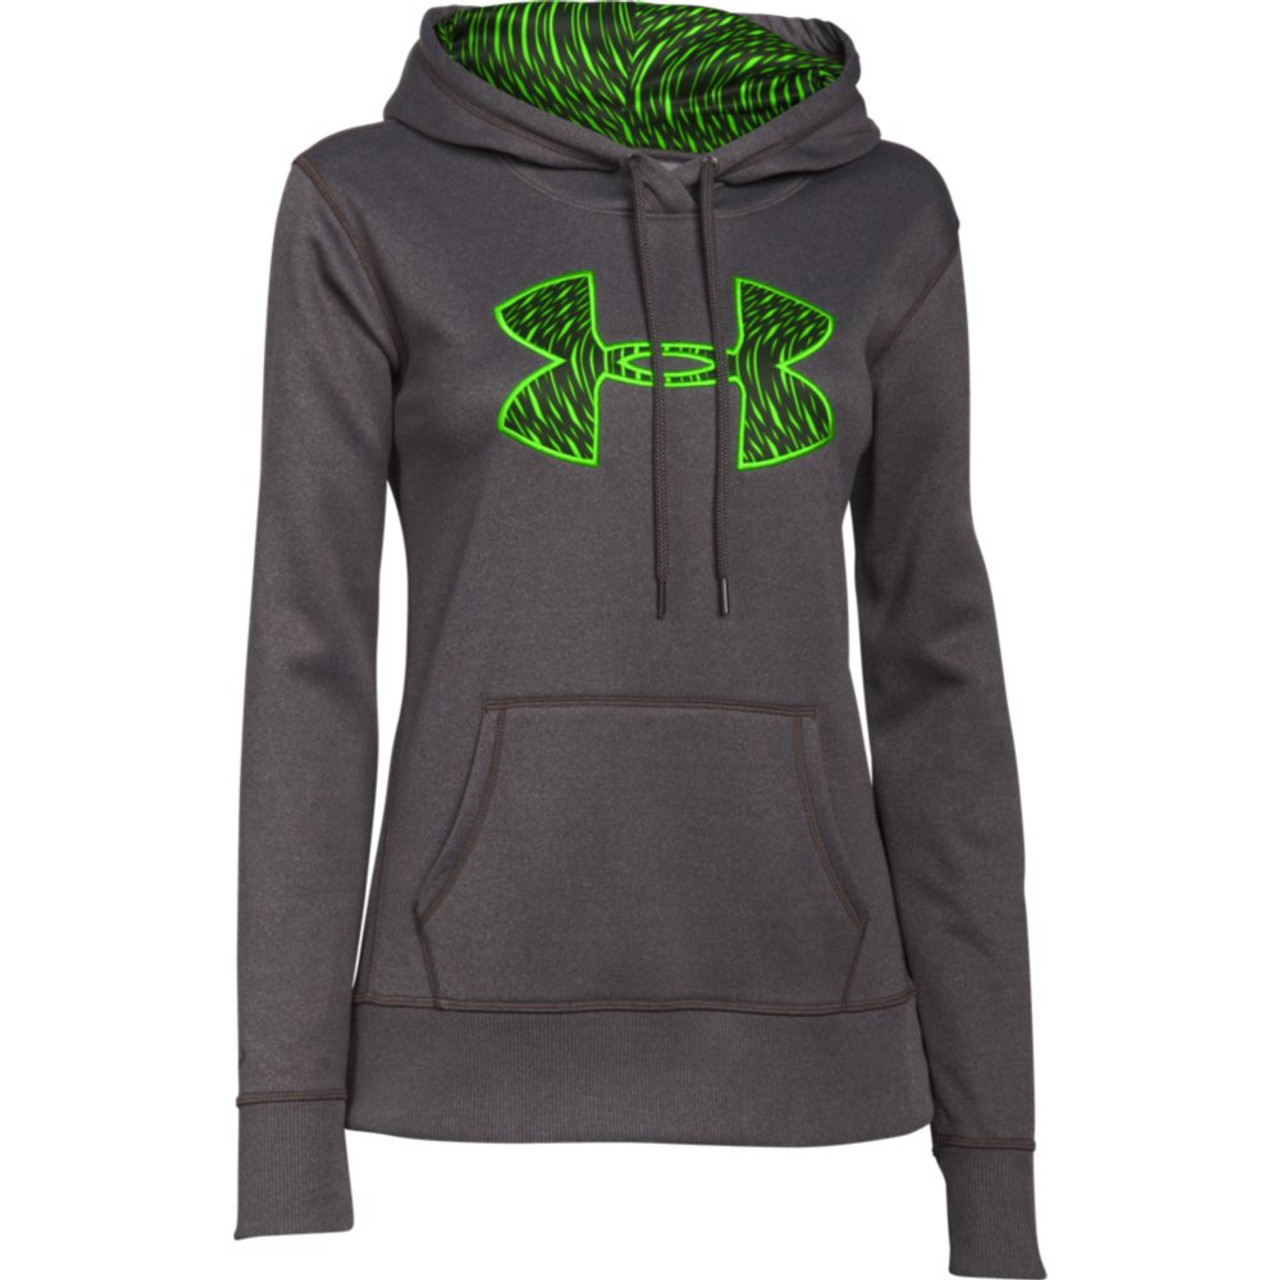 1d15ac1af Women's Under Armour Storm Armour Fleece Printed Big Logo Hoodie - Sieverts  Sporting Goods